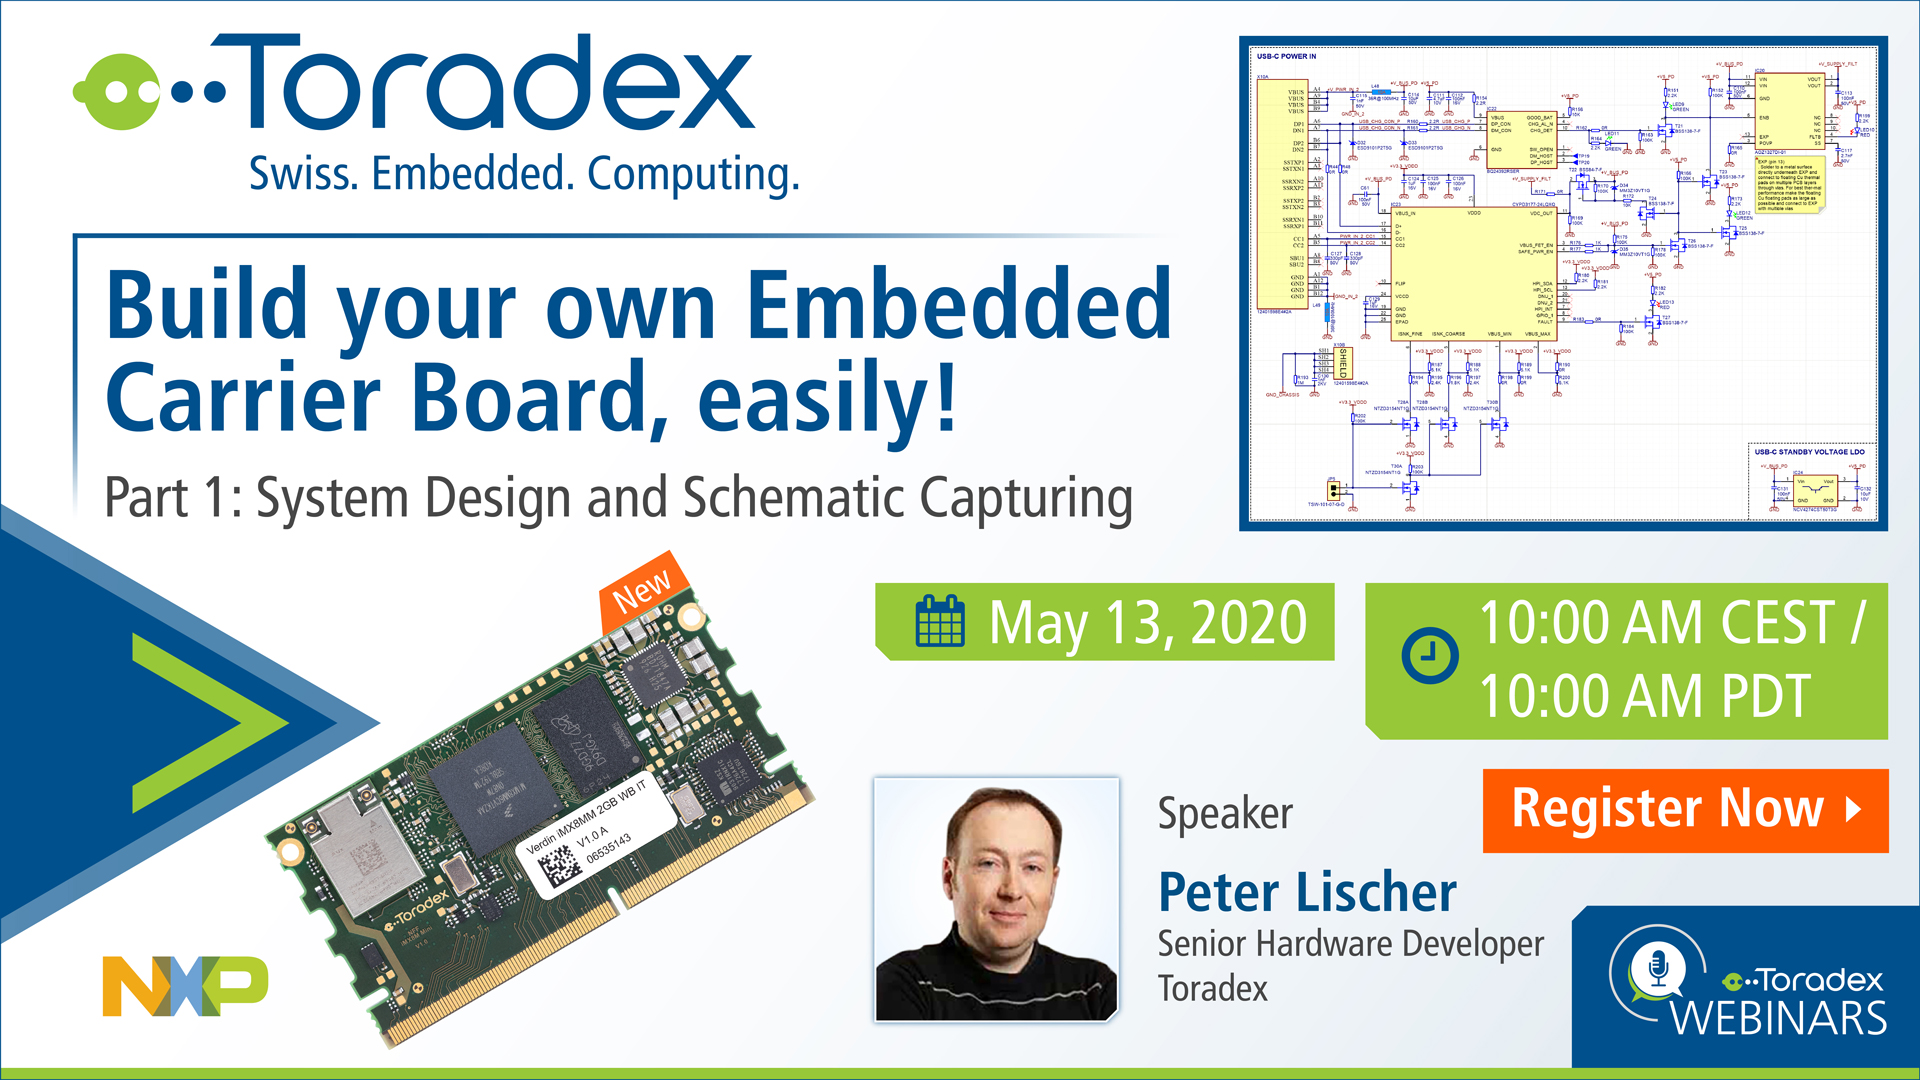 Build your own Embedded Carrier Board, easily